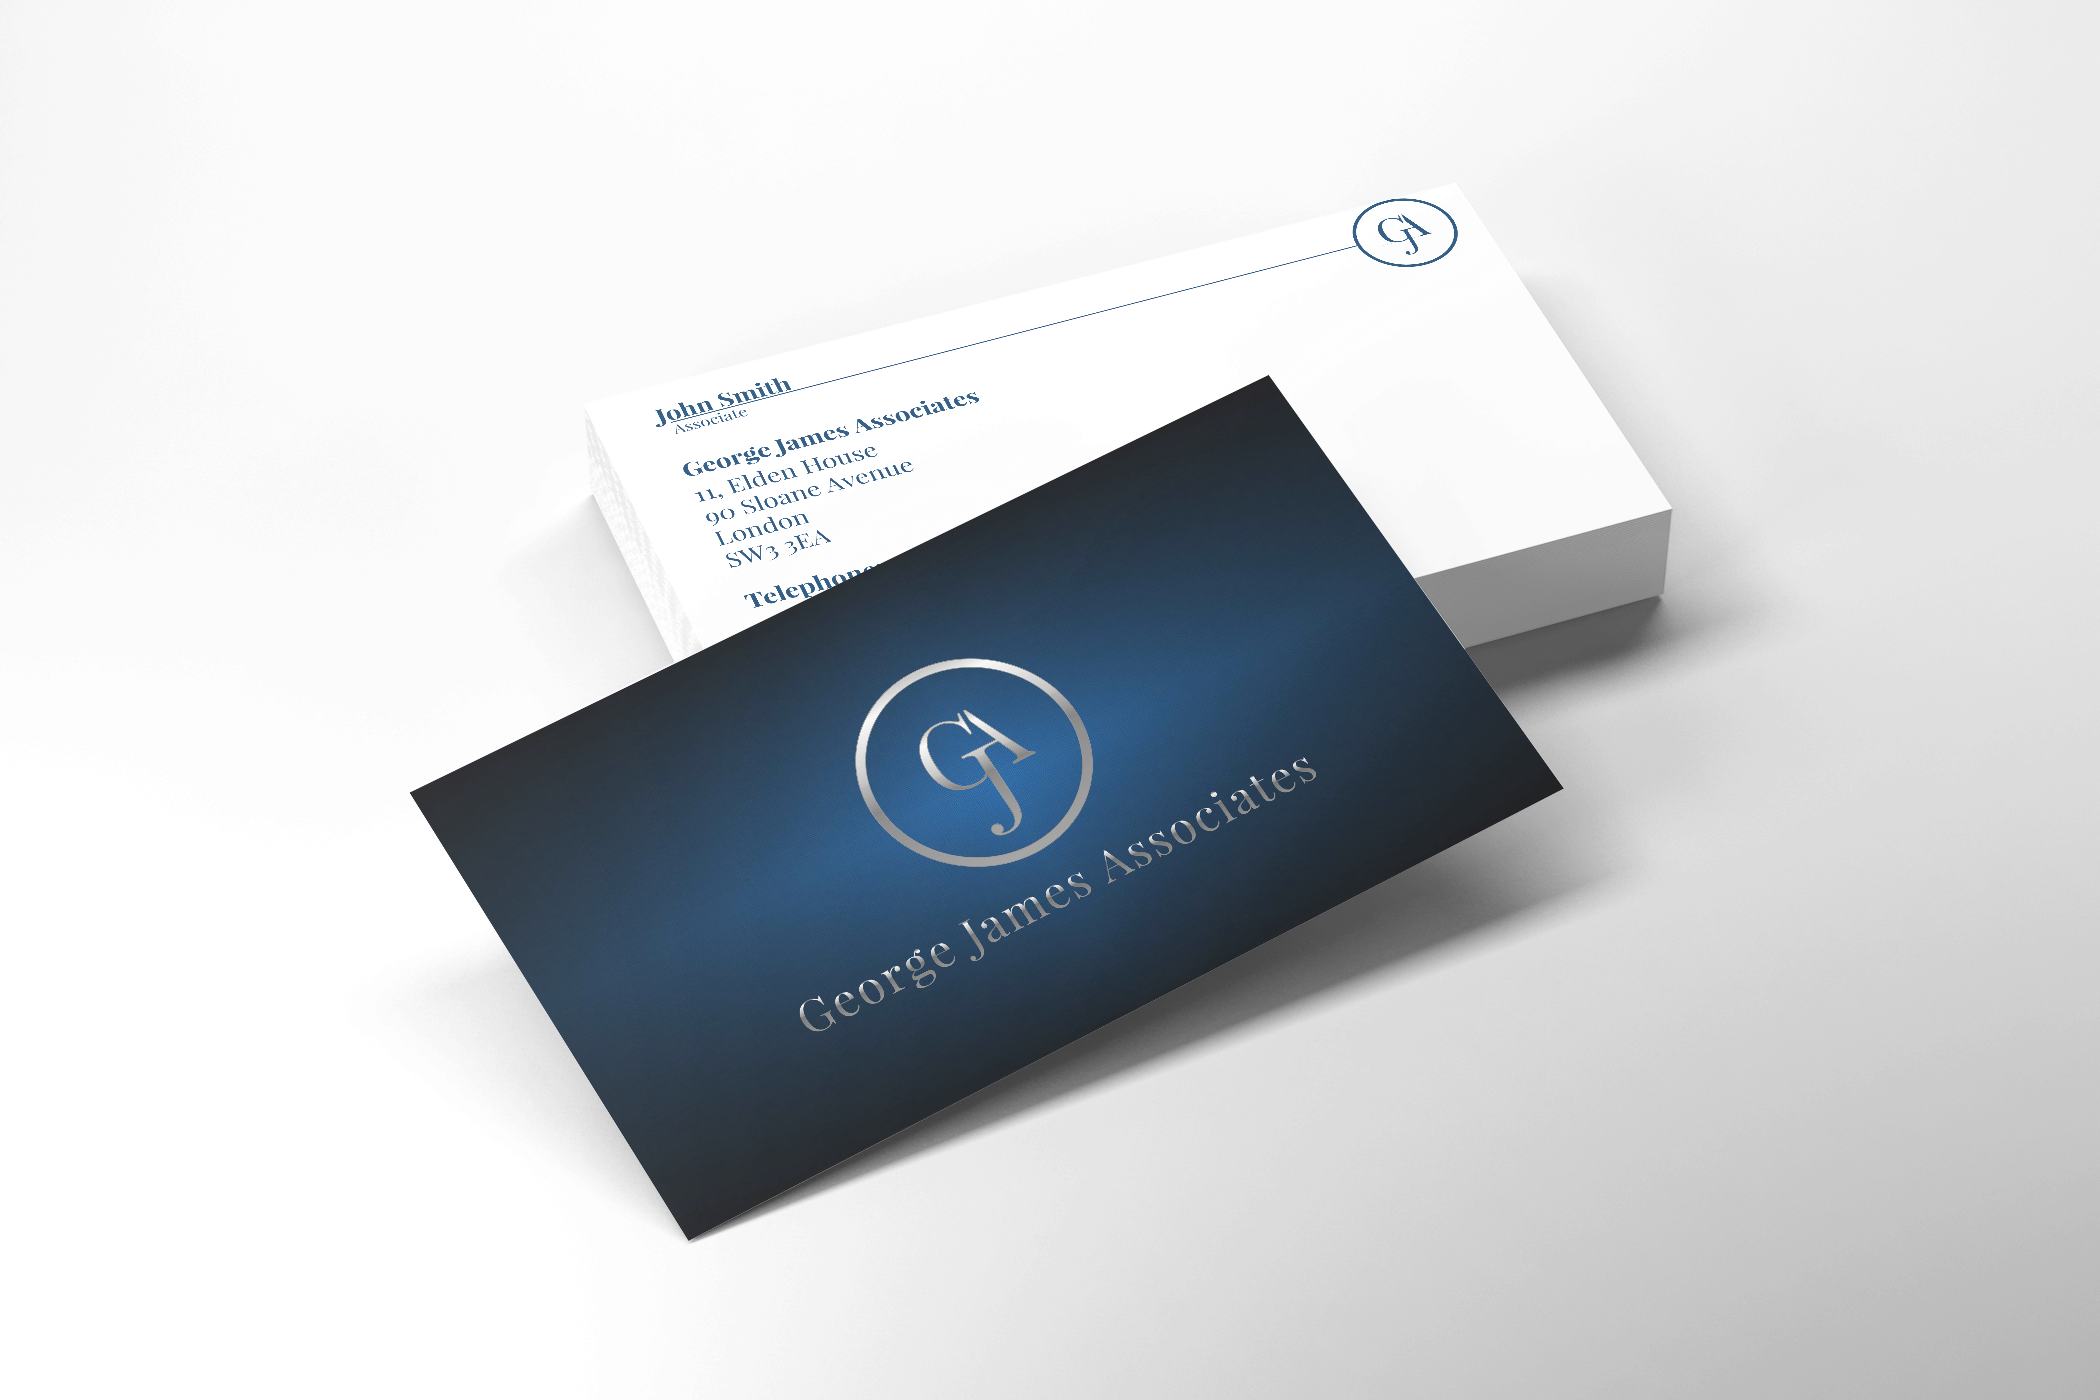 George James Business Cards